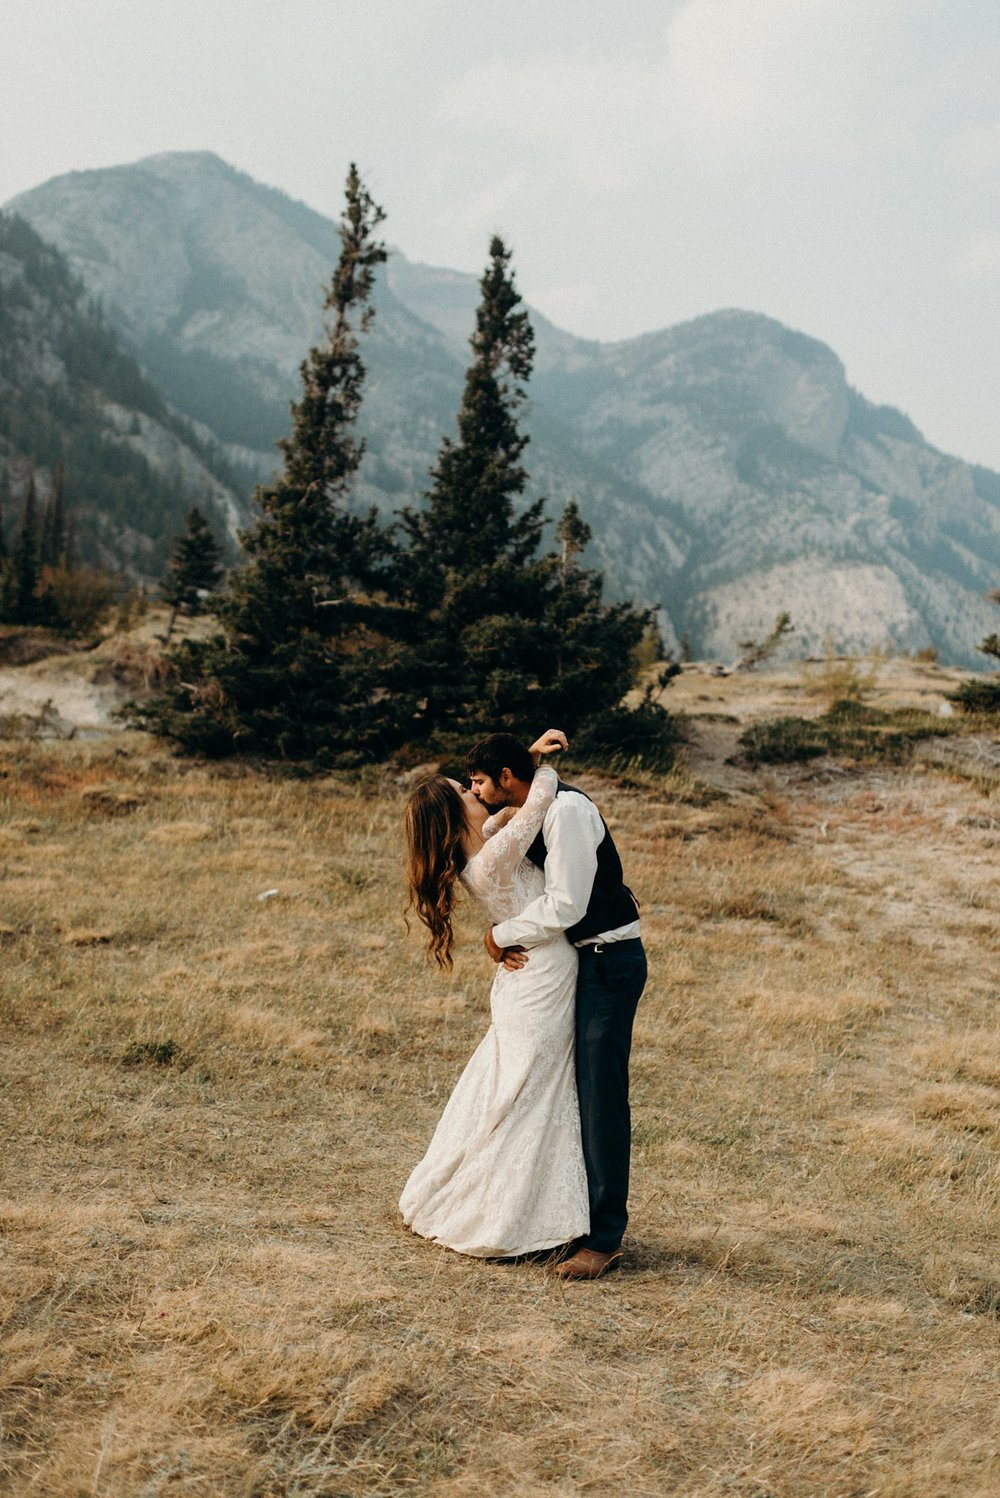 kaihla_tonai_intimate_wedding_elopement_photographer_6758.jpg